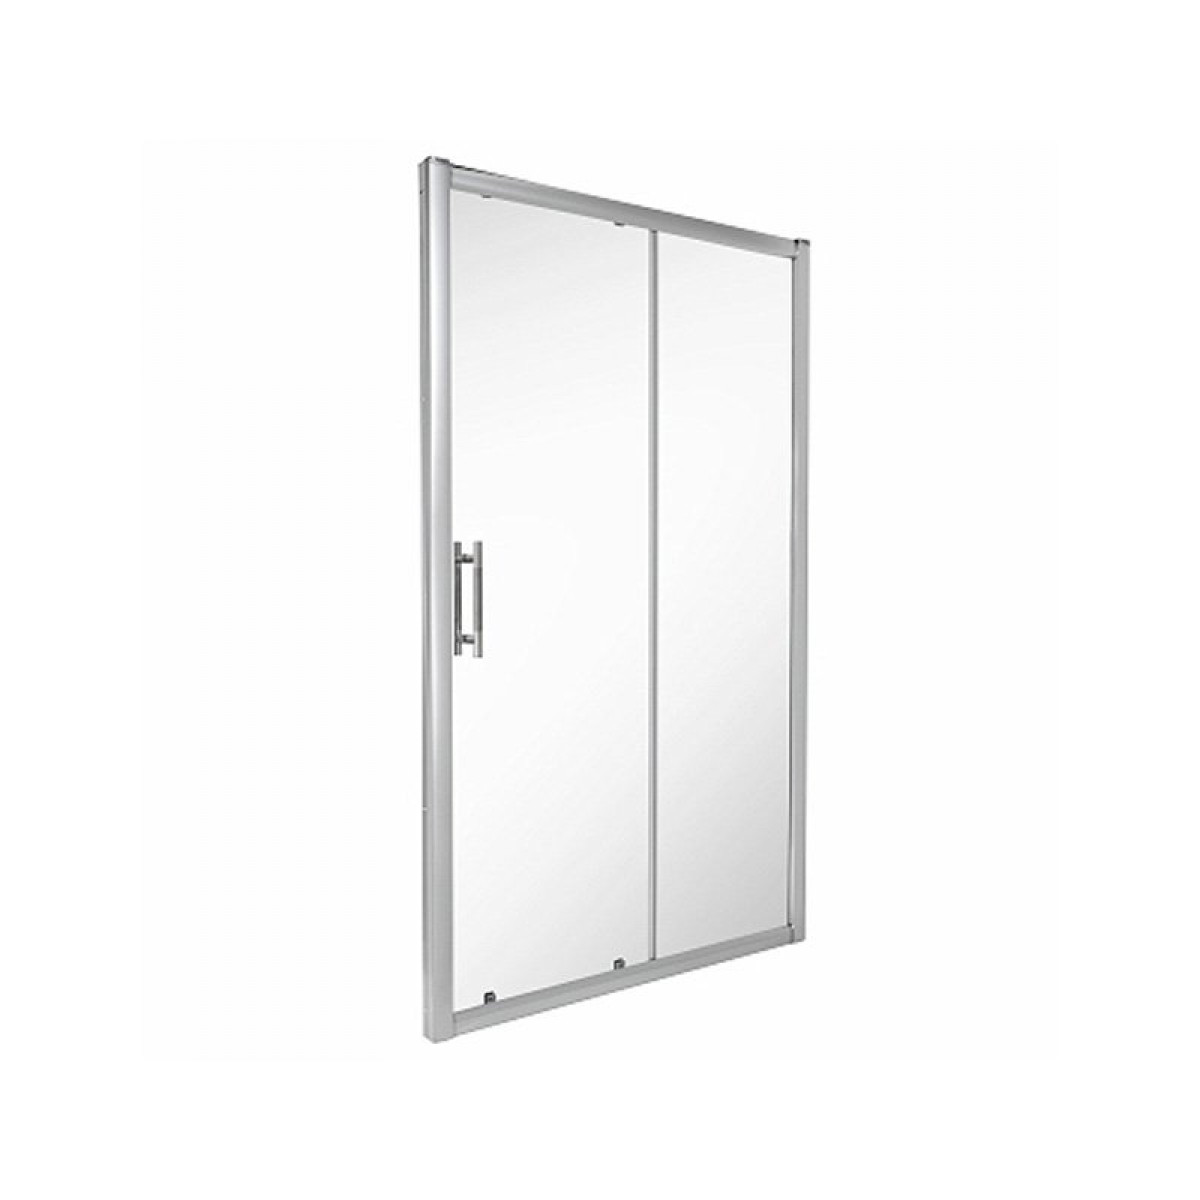 Twyford es400 1000mm sliding shower door es46500cp for 1000mm shower door